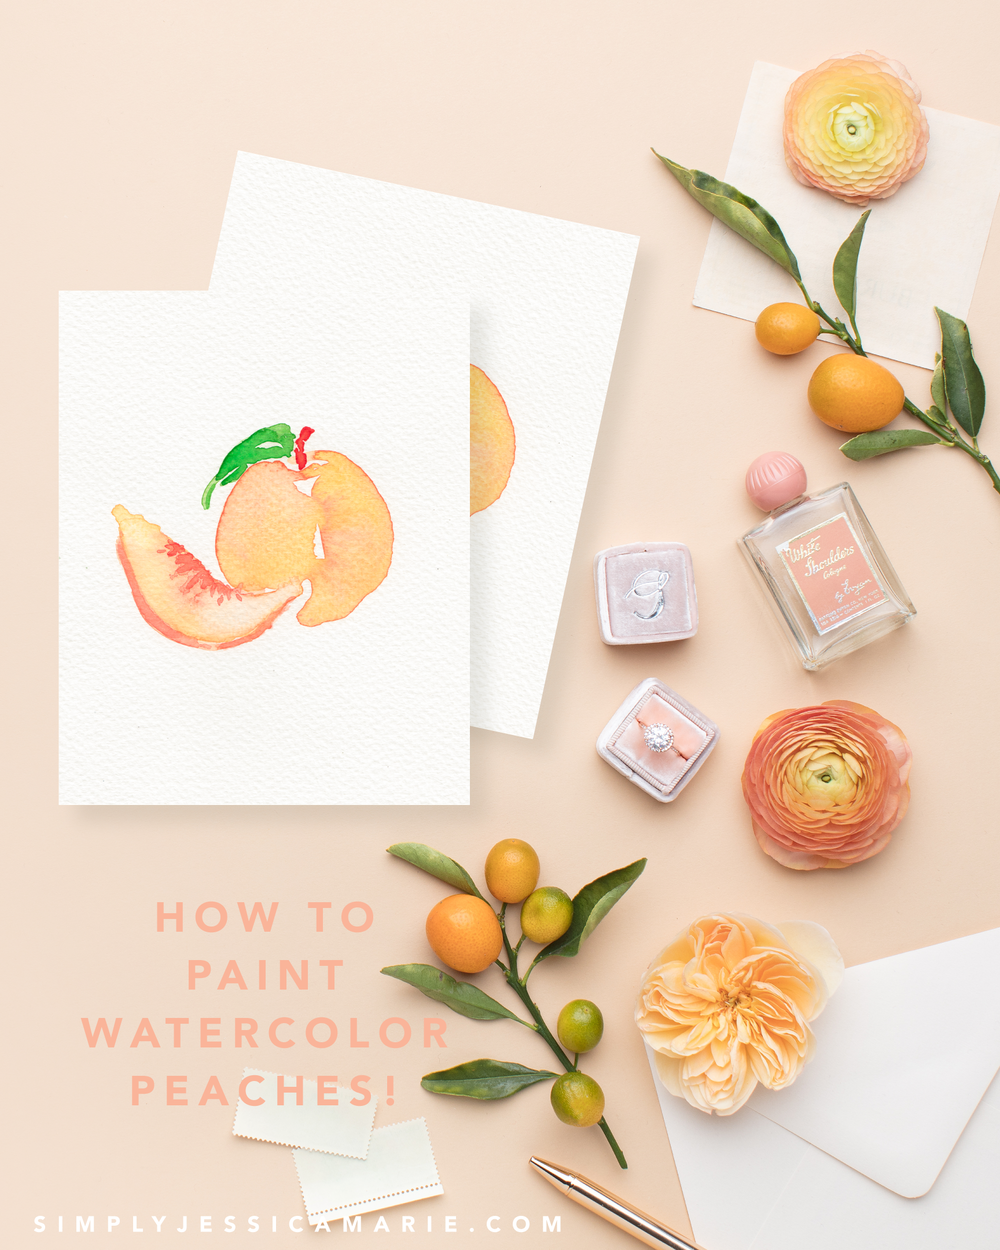 How to paint watercolor peaches! Fun and free watercolor videos by Simply Jessica Marie! Learn to mix new colors each week and paint with that color! | SC Stockshop